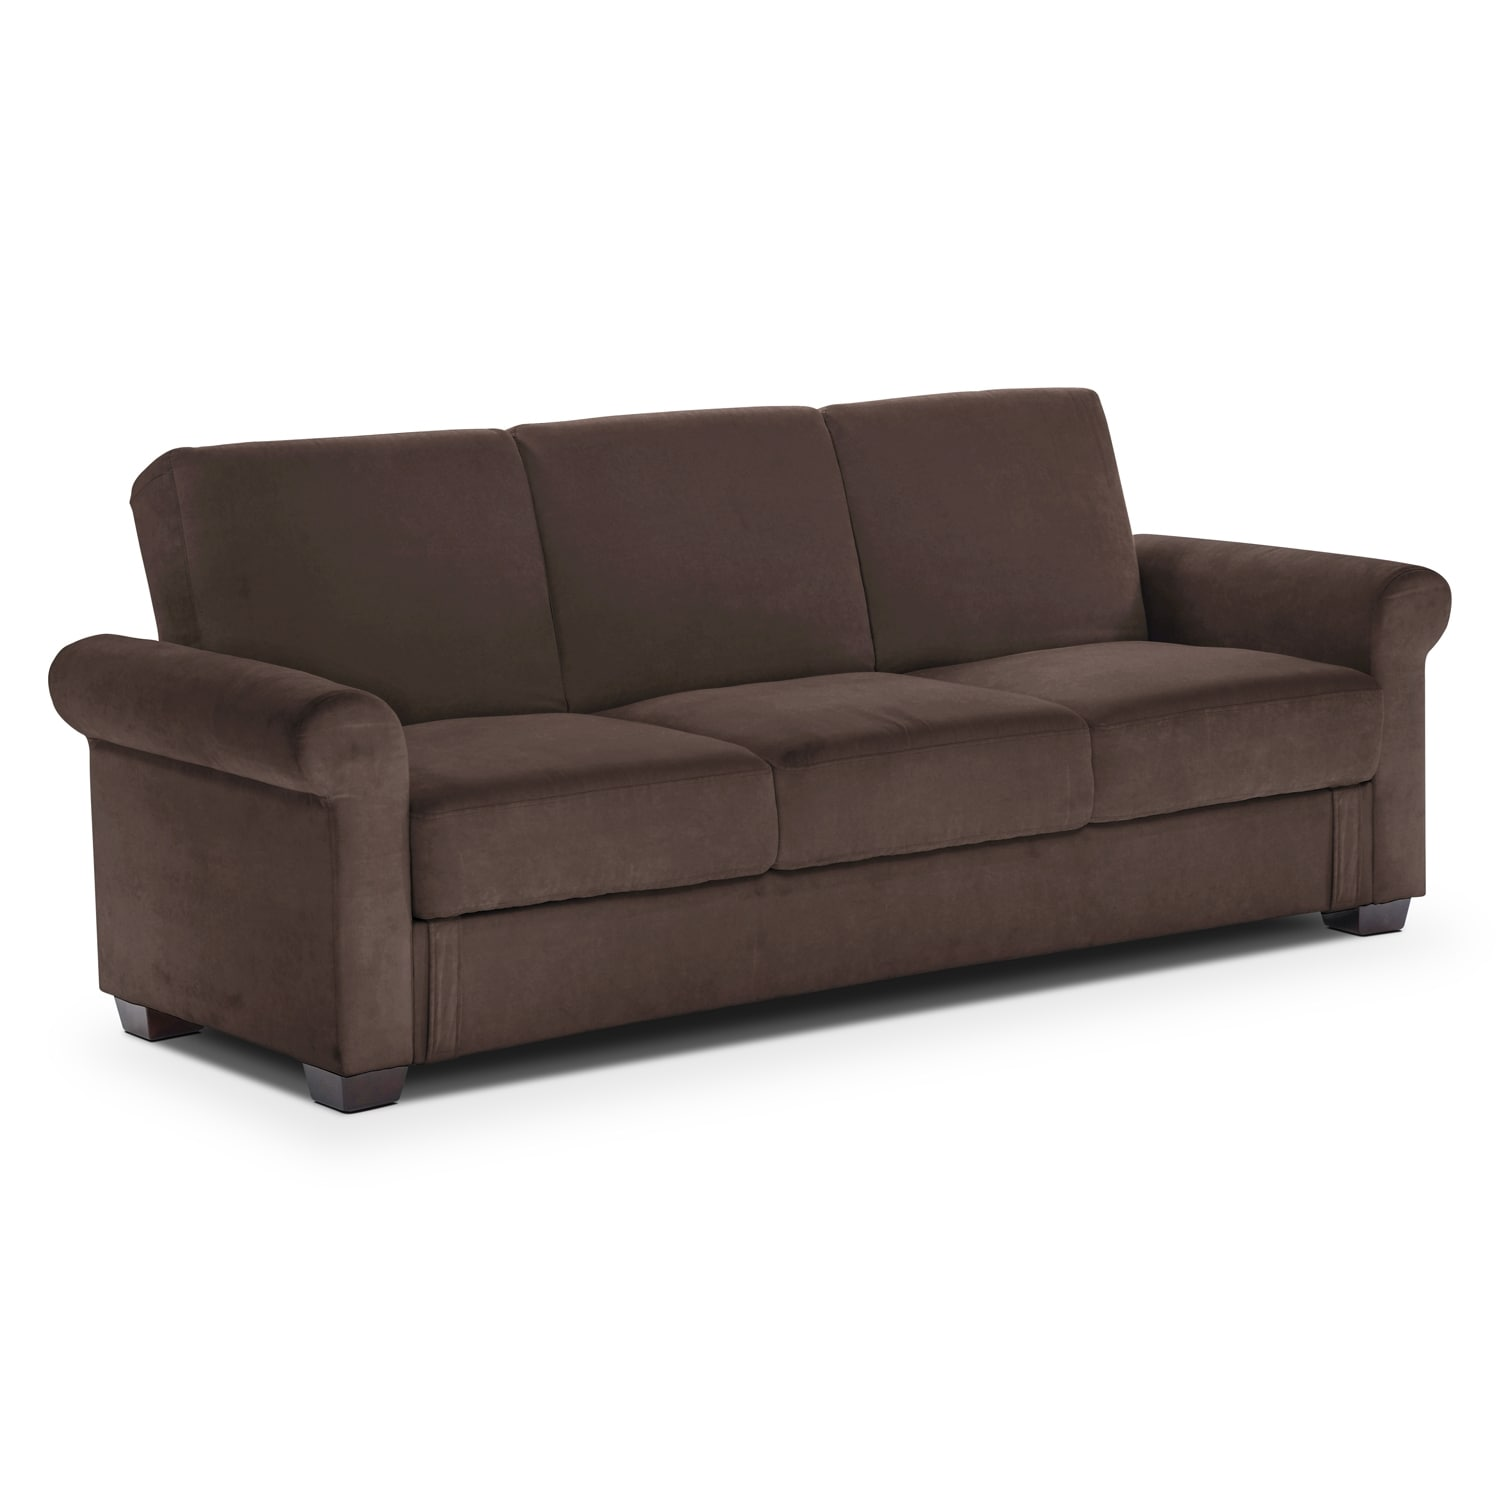 Furnishings for every room online and store furniture for Furniture sofa bed